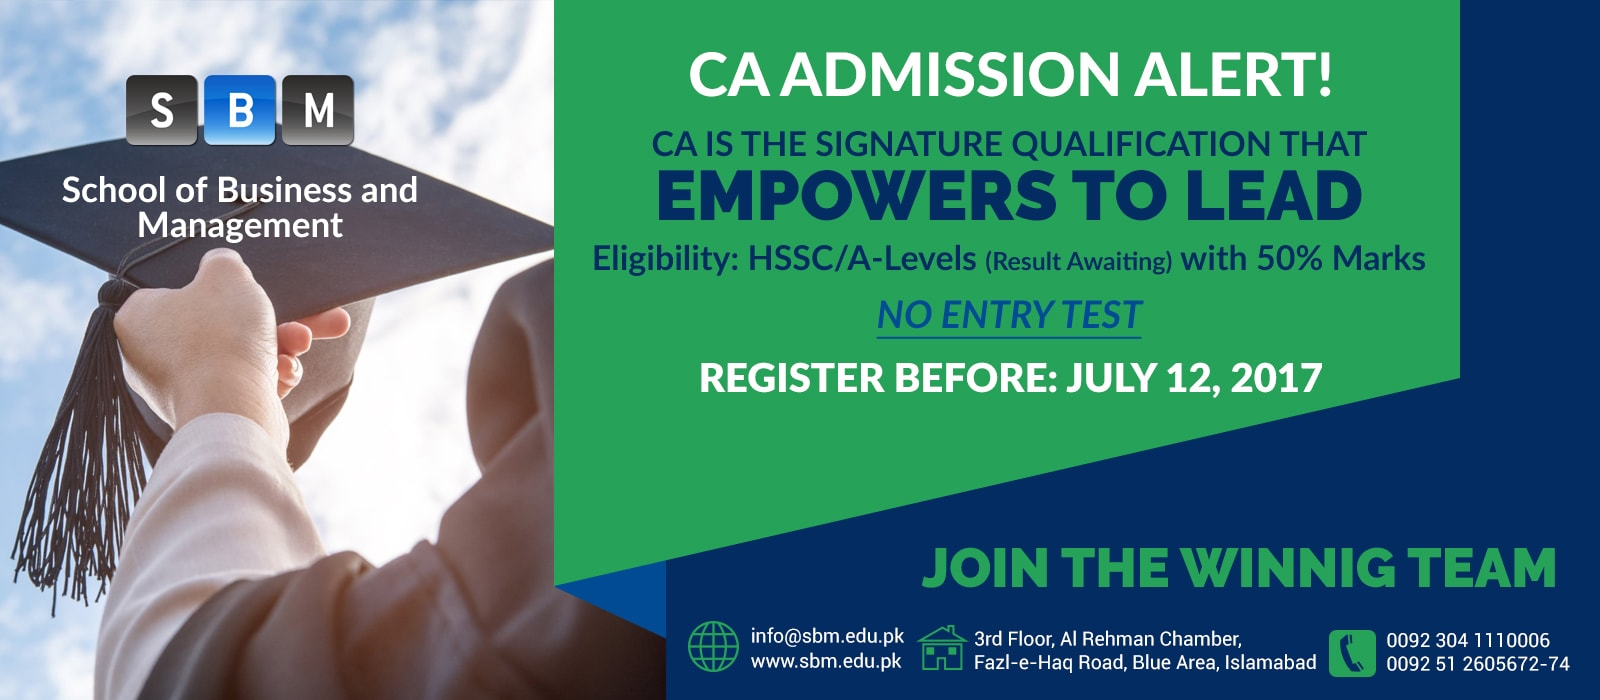 SBM offers admissions for Batch 2 of CA